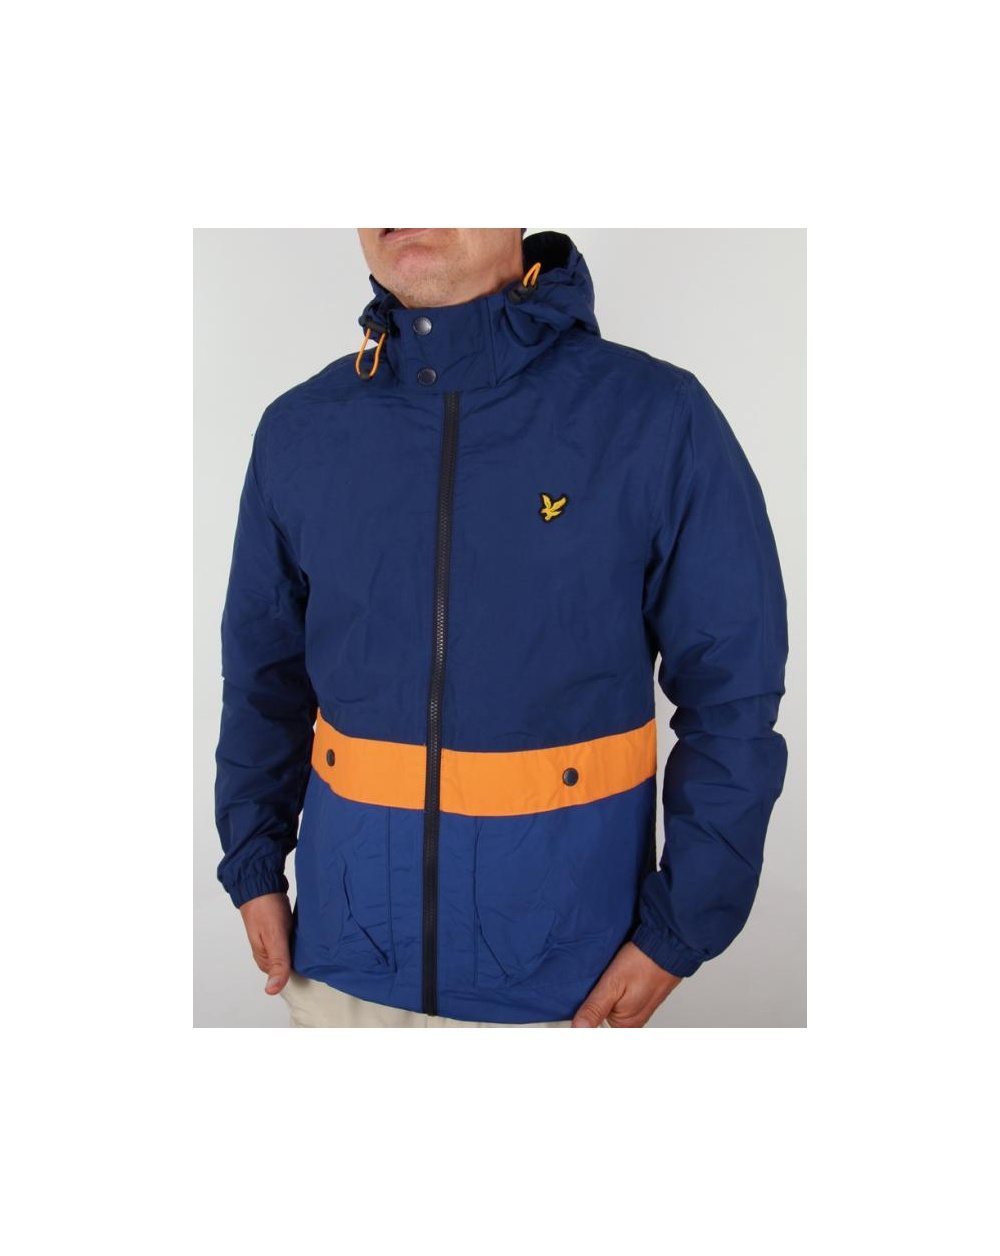 lyle and scott archive striped jacket admiral blue lyle and scott from 80s casual classics uk. Black Bedroom Furniture Sets. Home Design Ideas